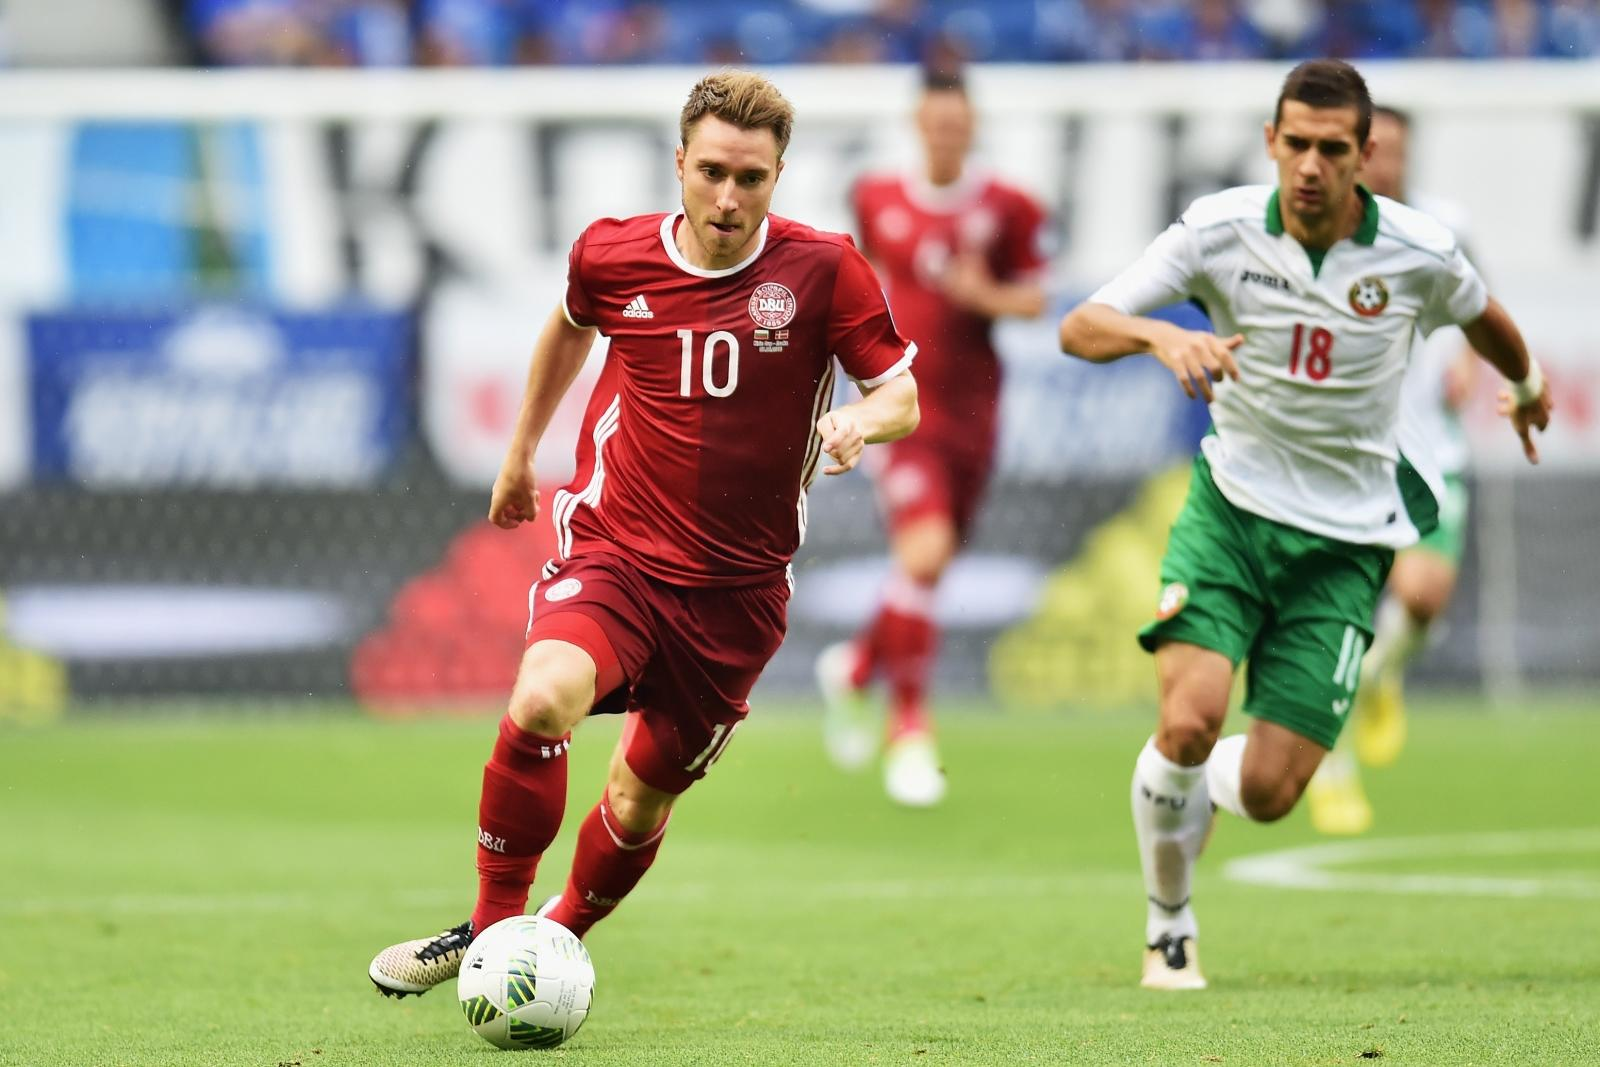 Tottenham midfielder Christian Eriksen omitted from Denmark Olympic squad